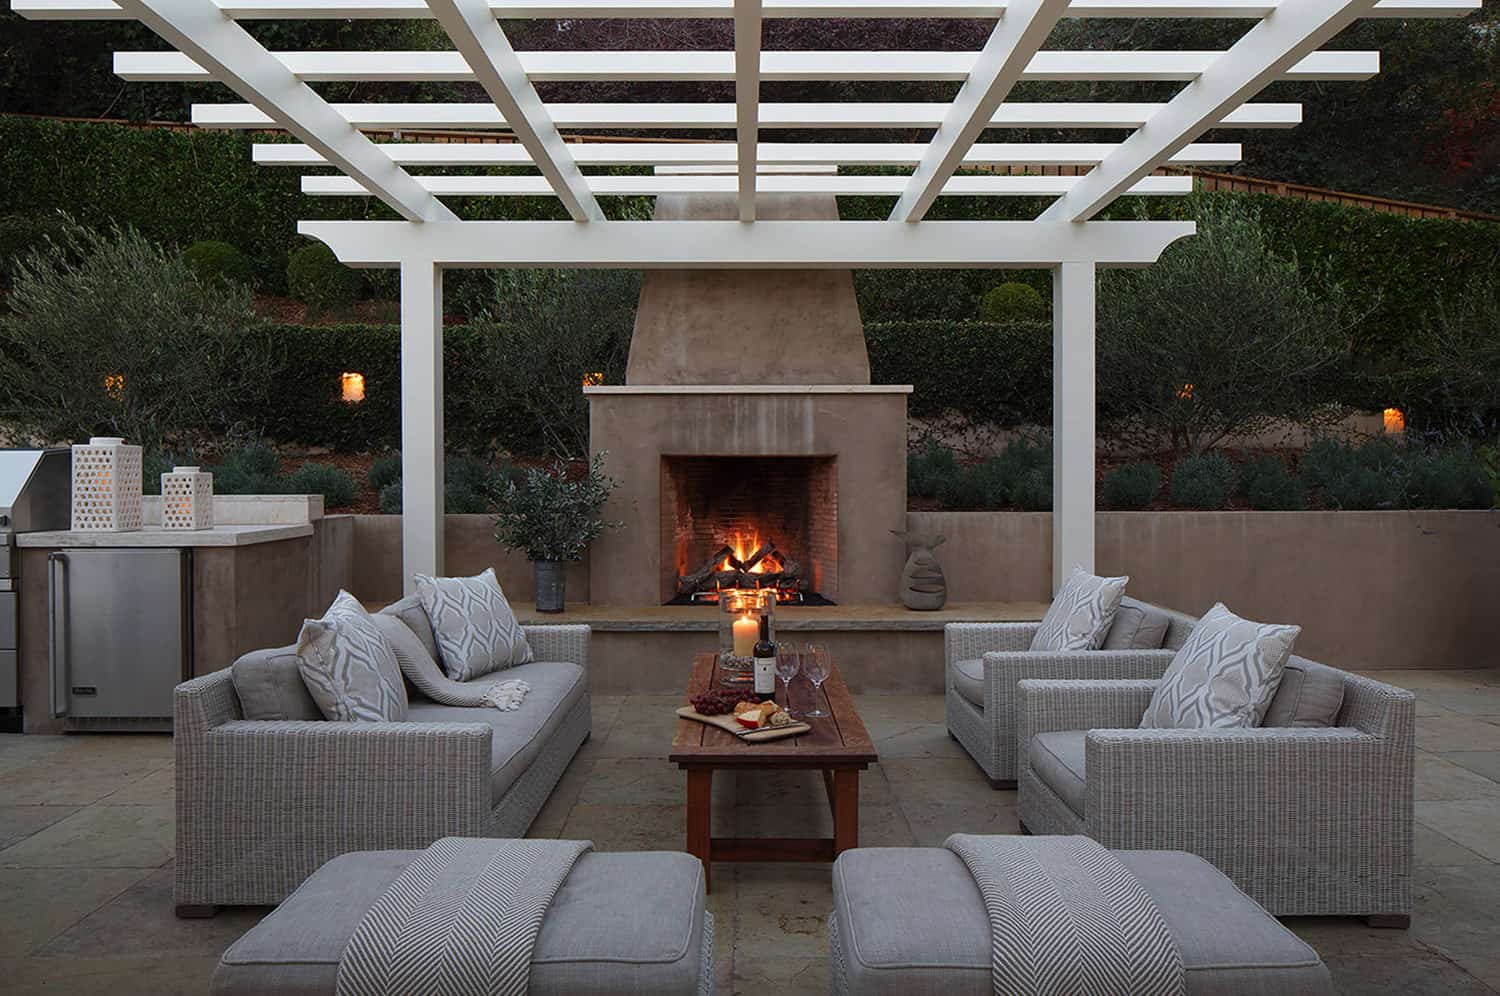 Pergola-design-ideas-open-living-room-with-fireplace